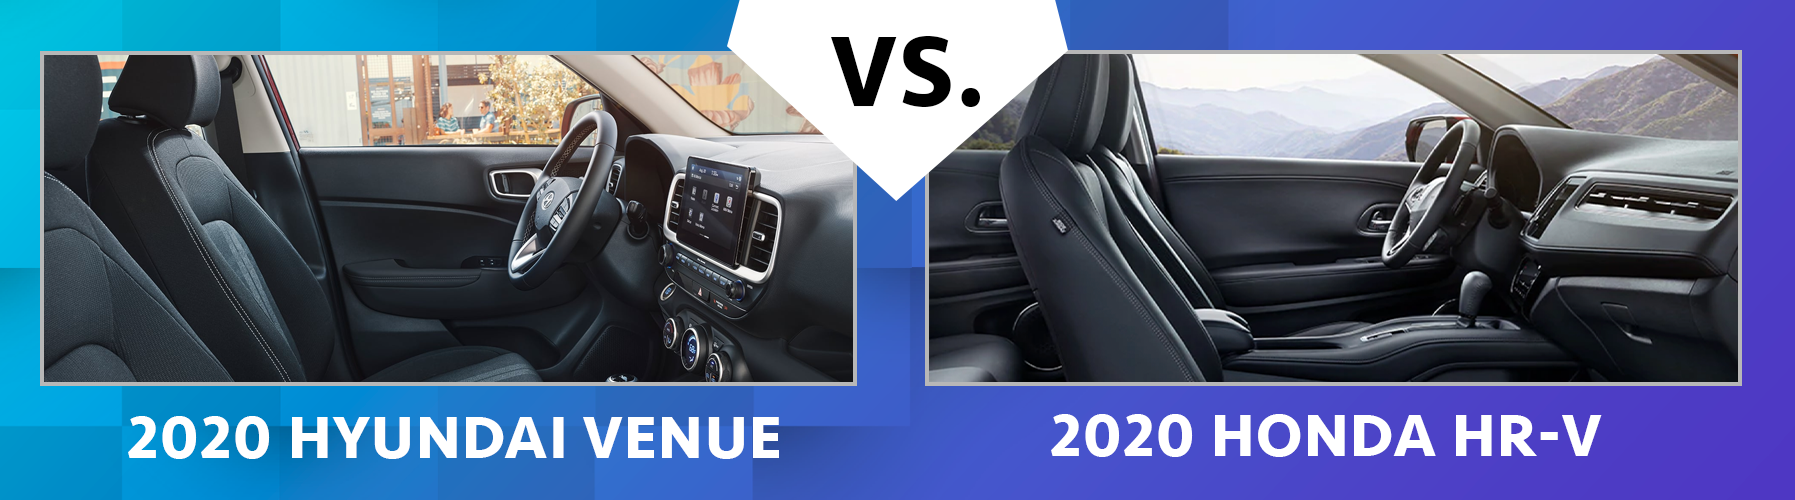 2020 Venue vs 2020 Honda HR-V